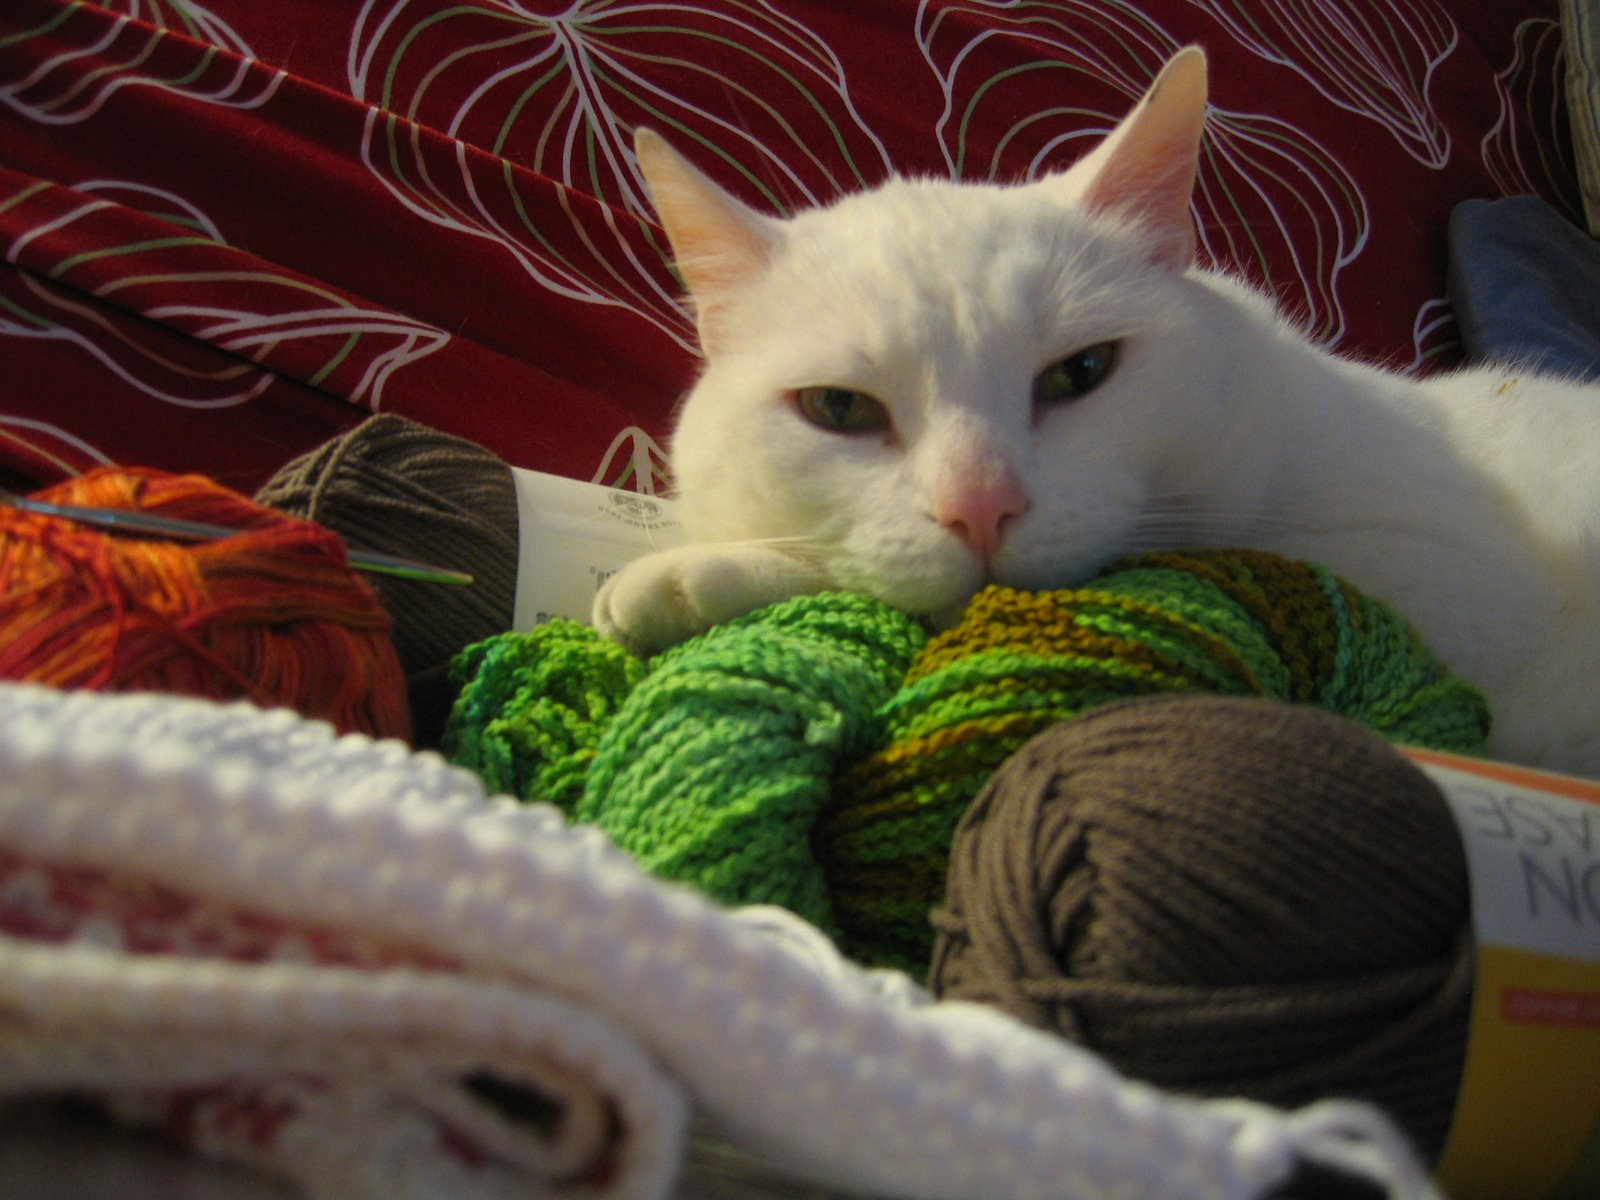 [Max+loves+the+yarn+for+this+project]